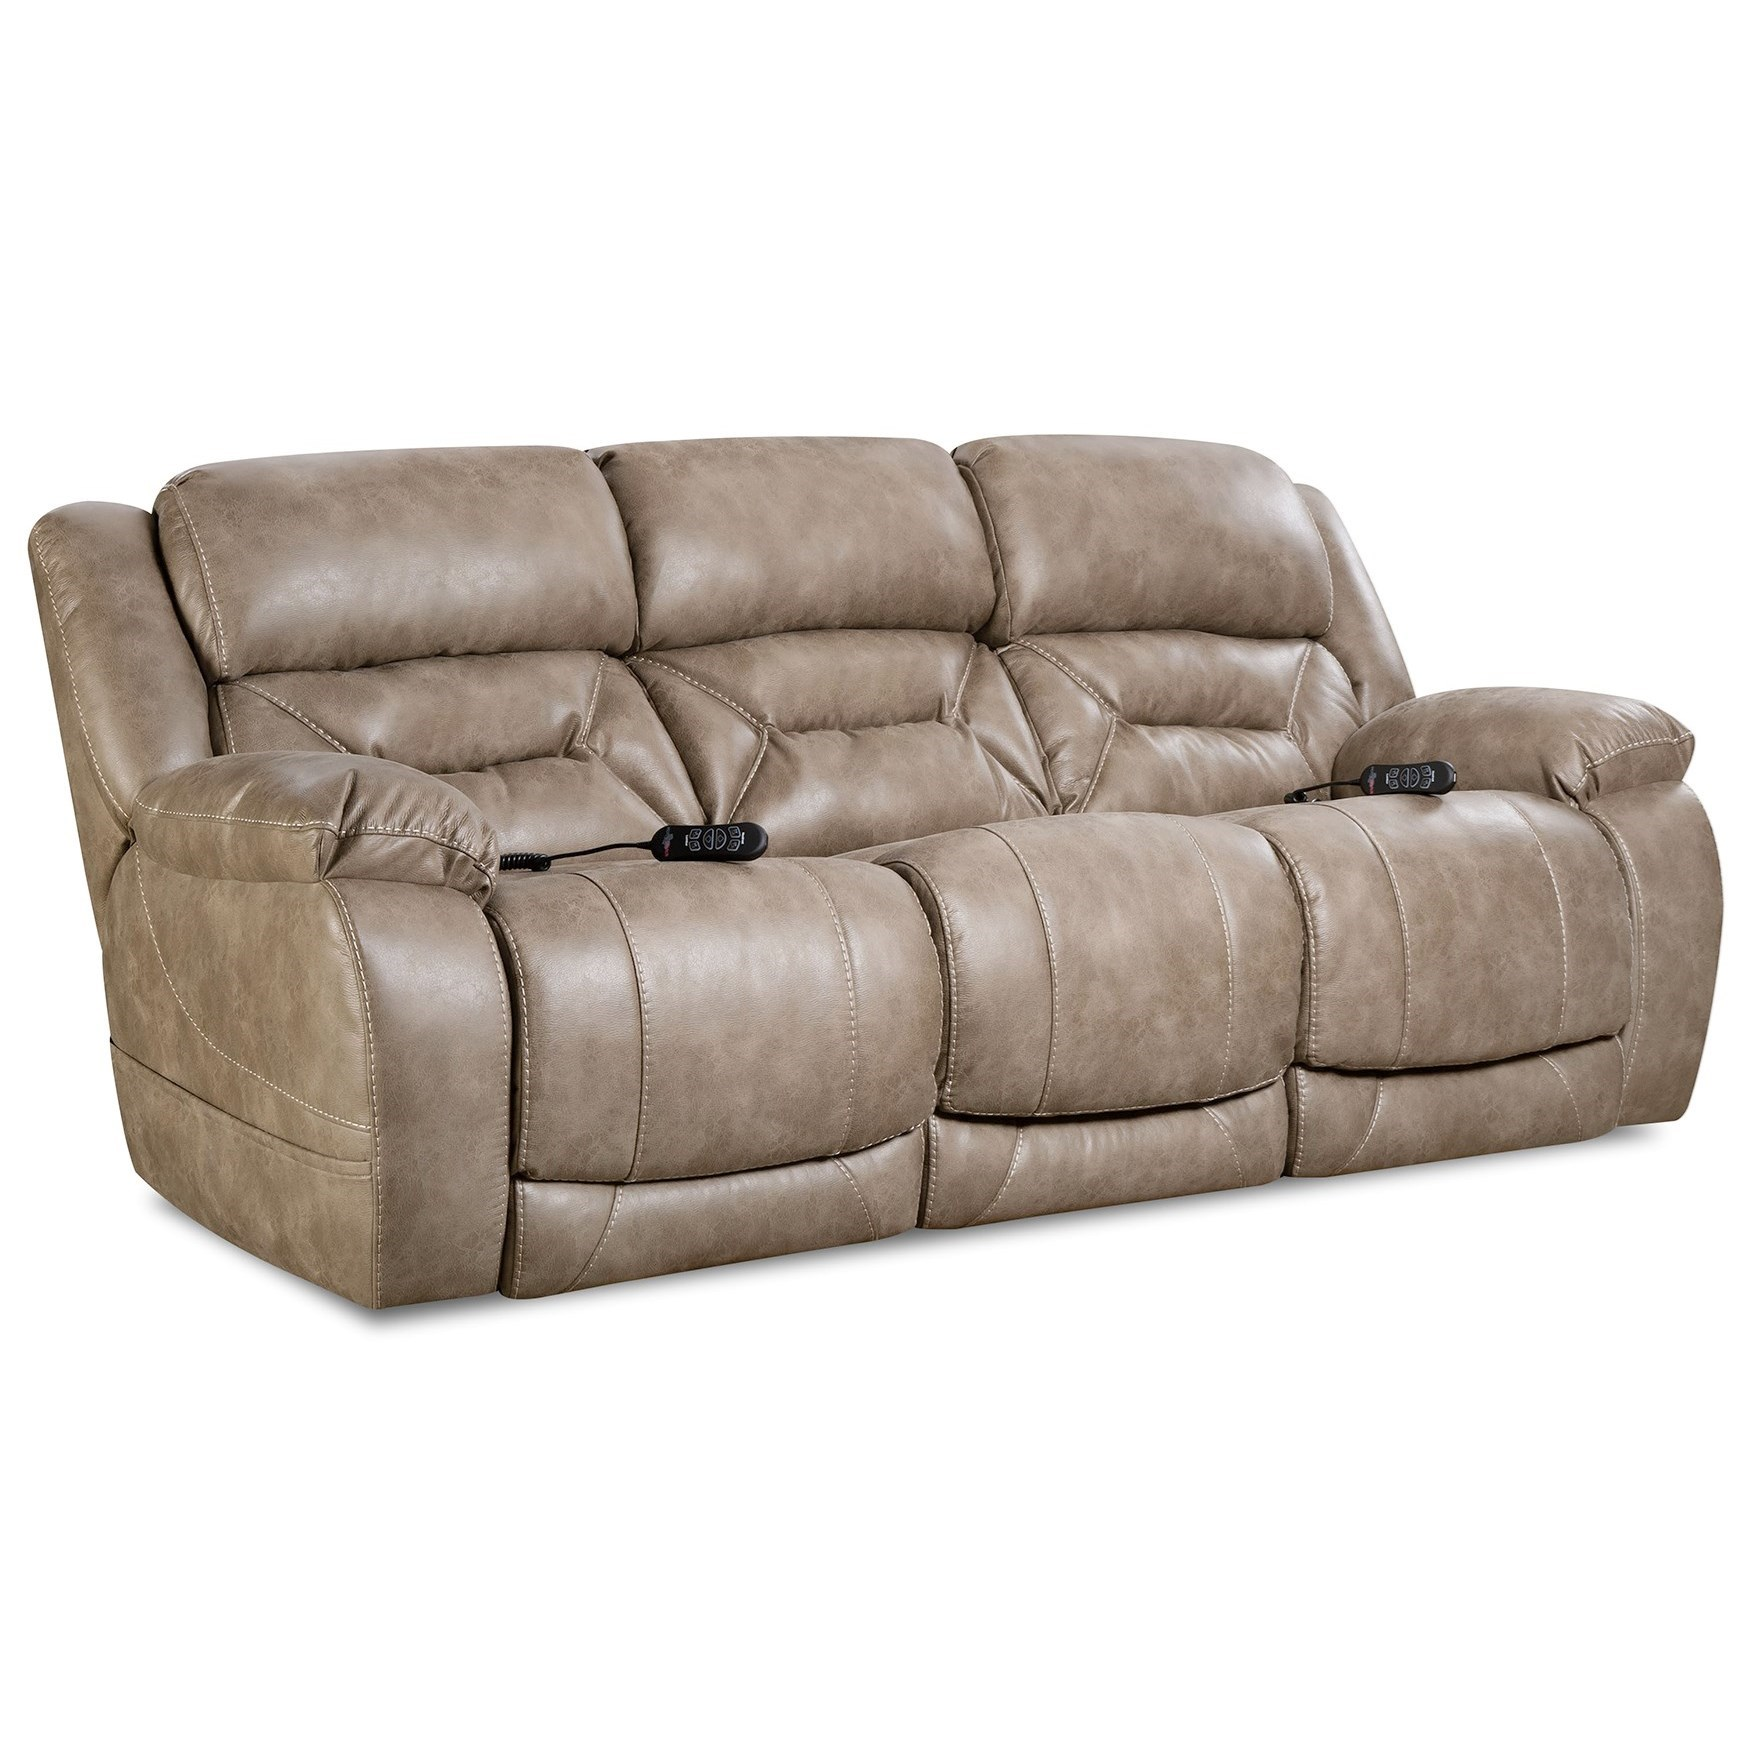 Enterprise Power Reclining Sofa by HomeStretch at Suburban Furniture